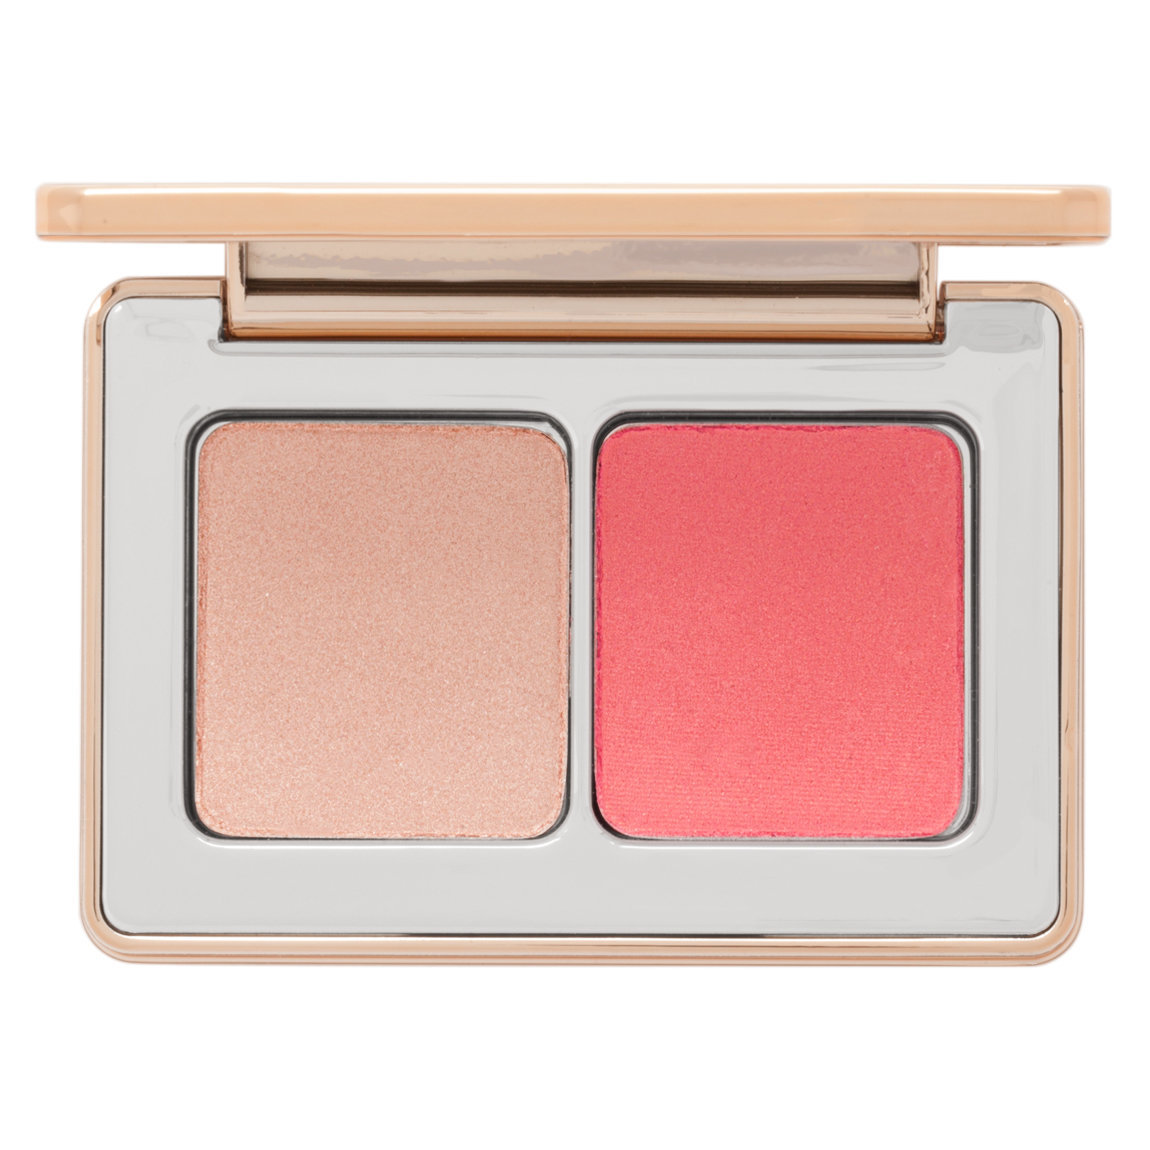 Natasha Denona Mini Blush & Glow product smear.